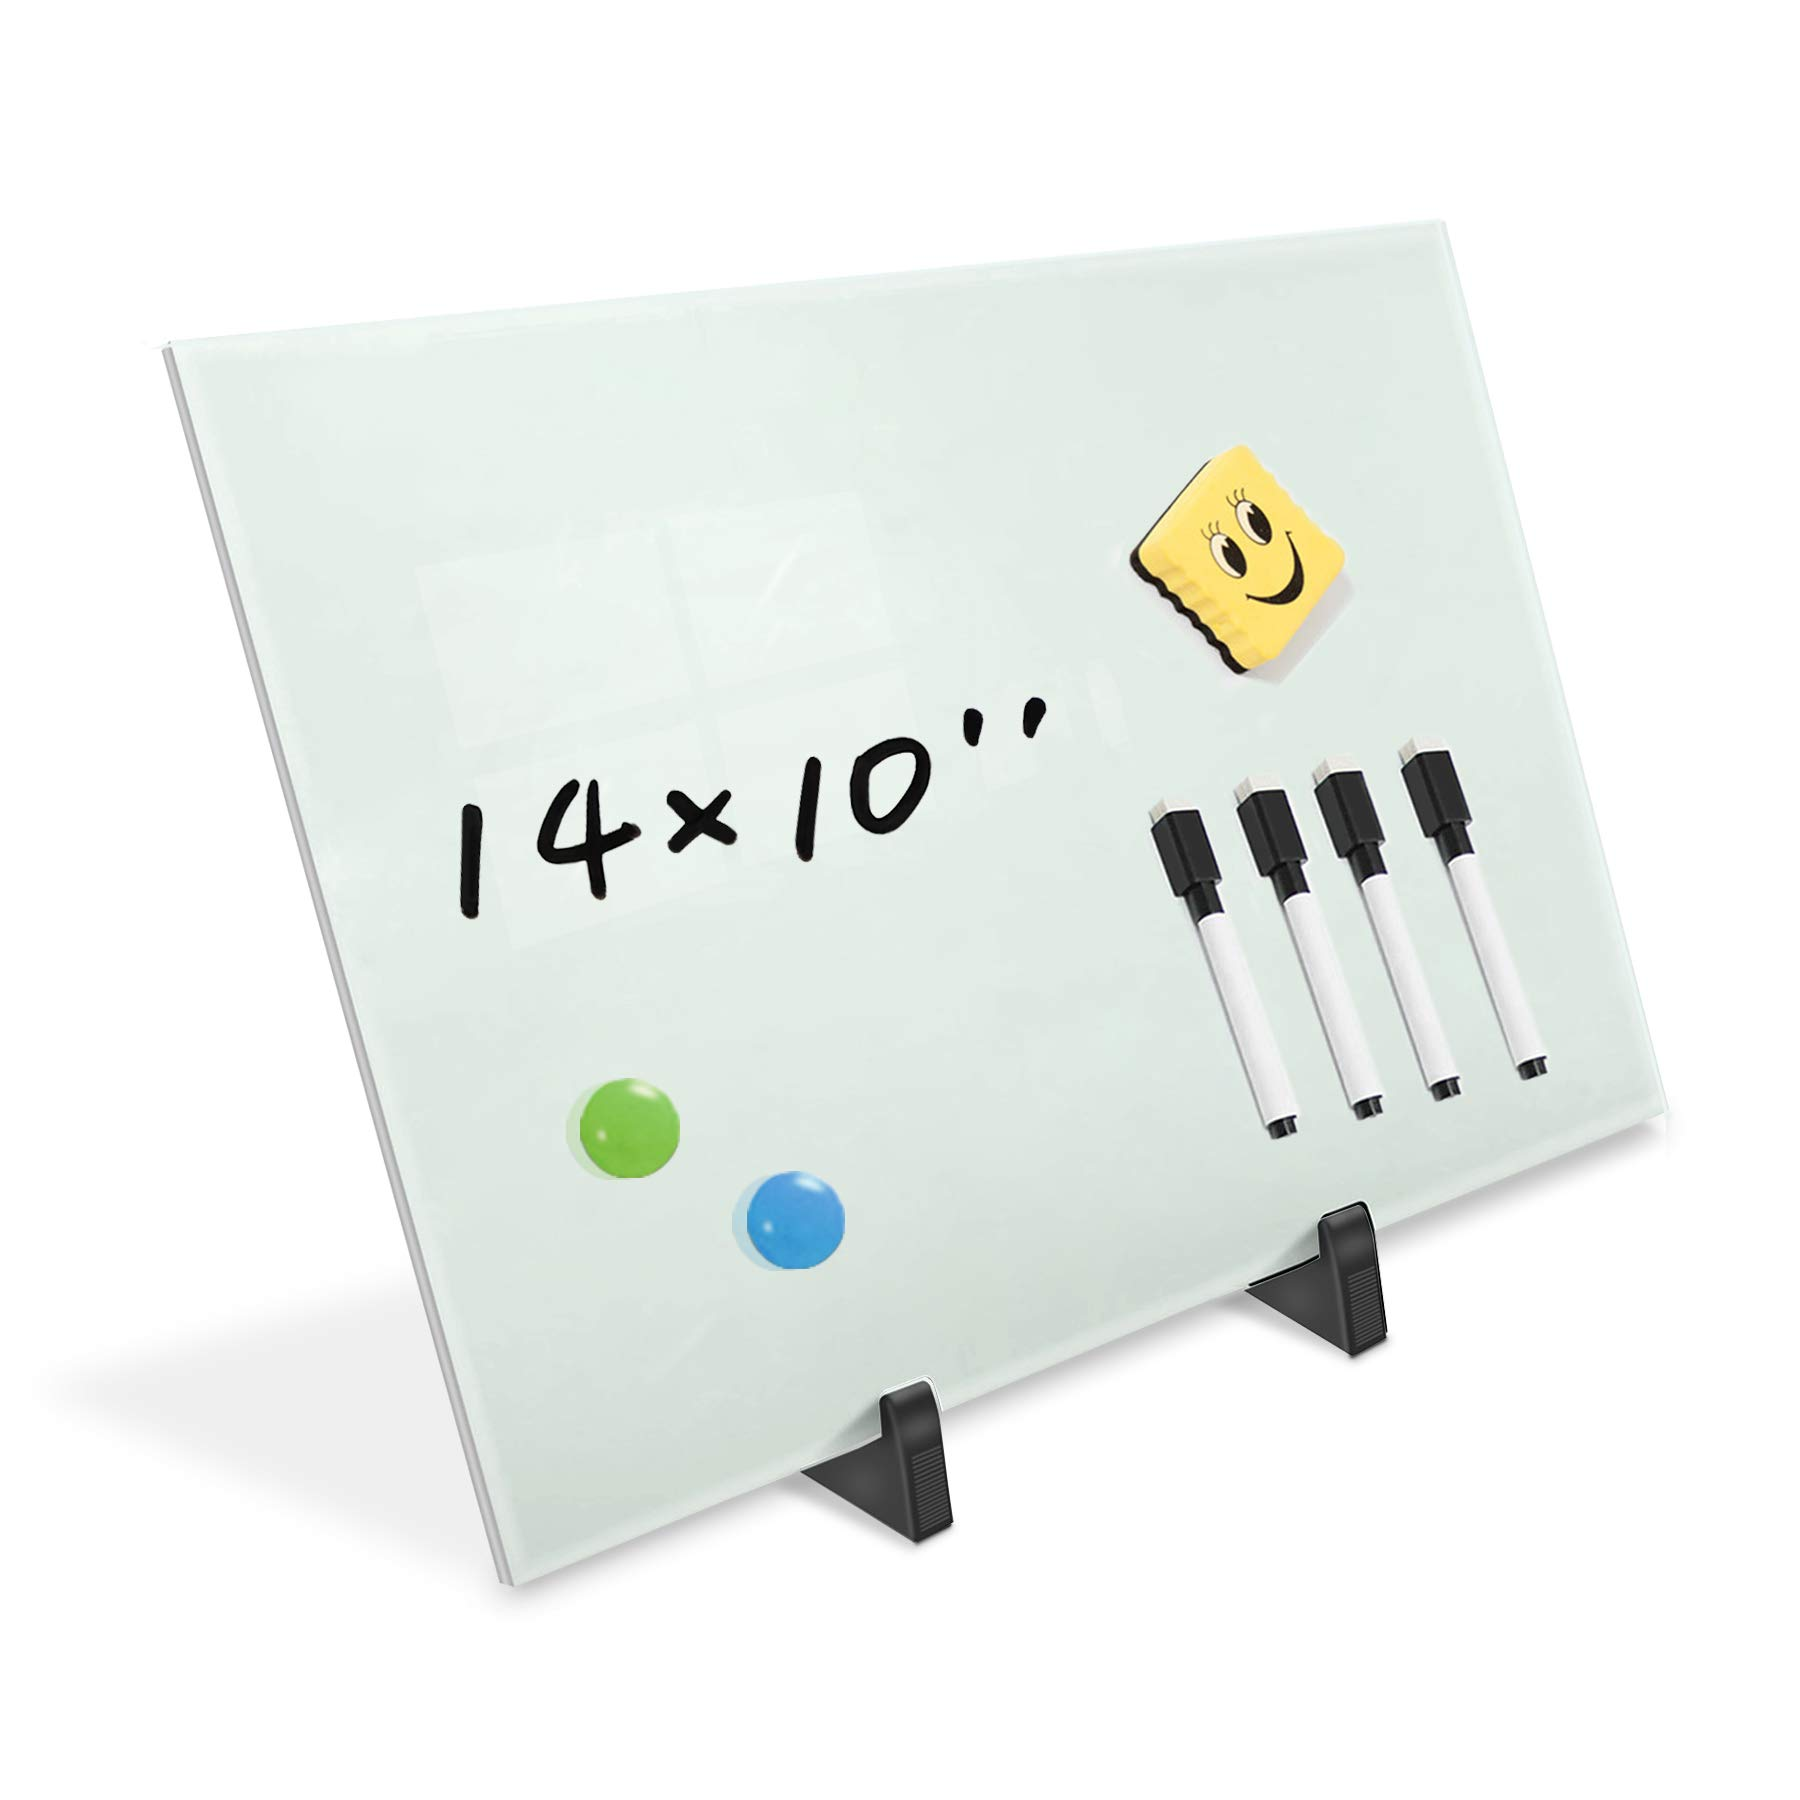 Zhidian Small Glass Dry Erase Board Desktop Easel 10 X 14 Inches Magnetic Glass Whiteboard On Stand For Table Desk Great For Office Home Stain Resistant Tempered Glass